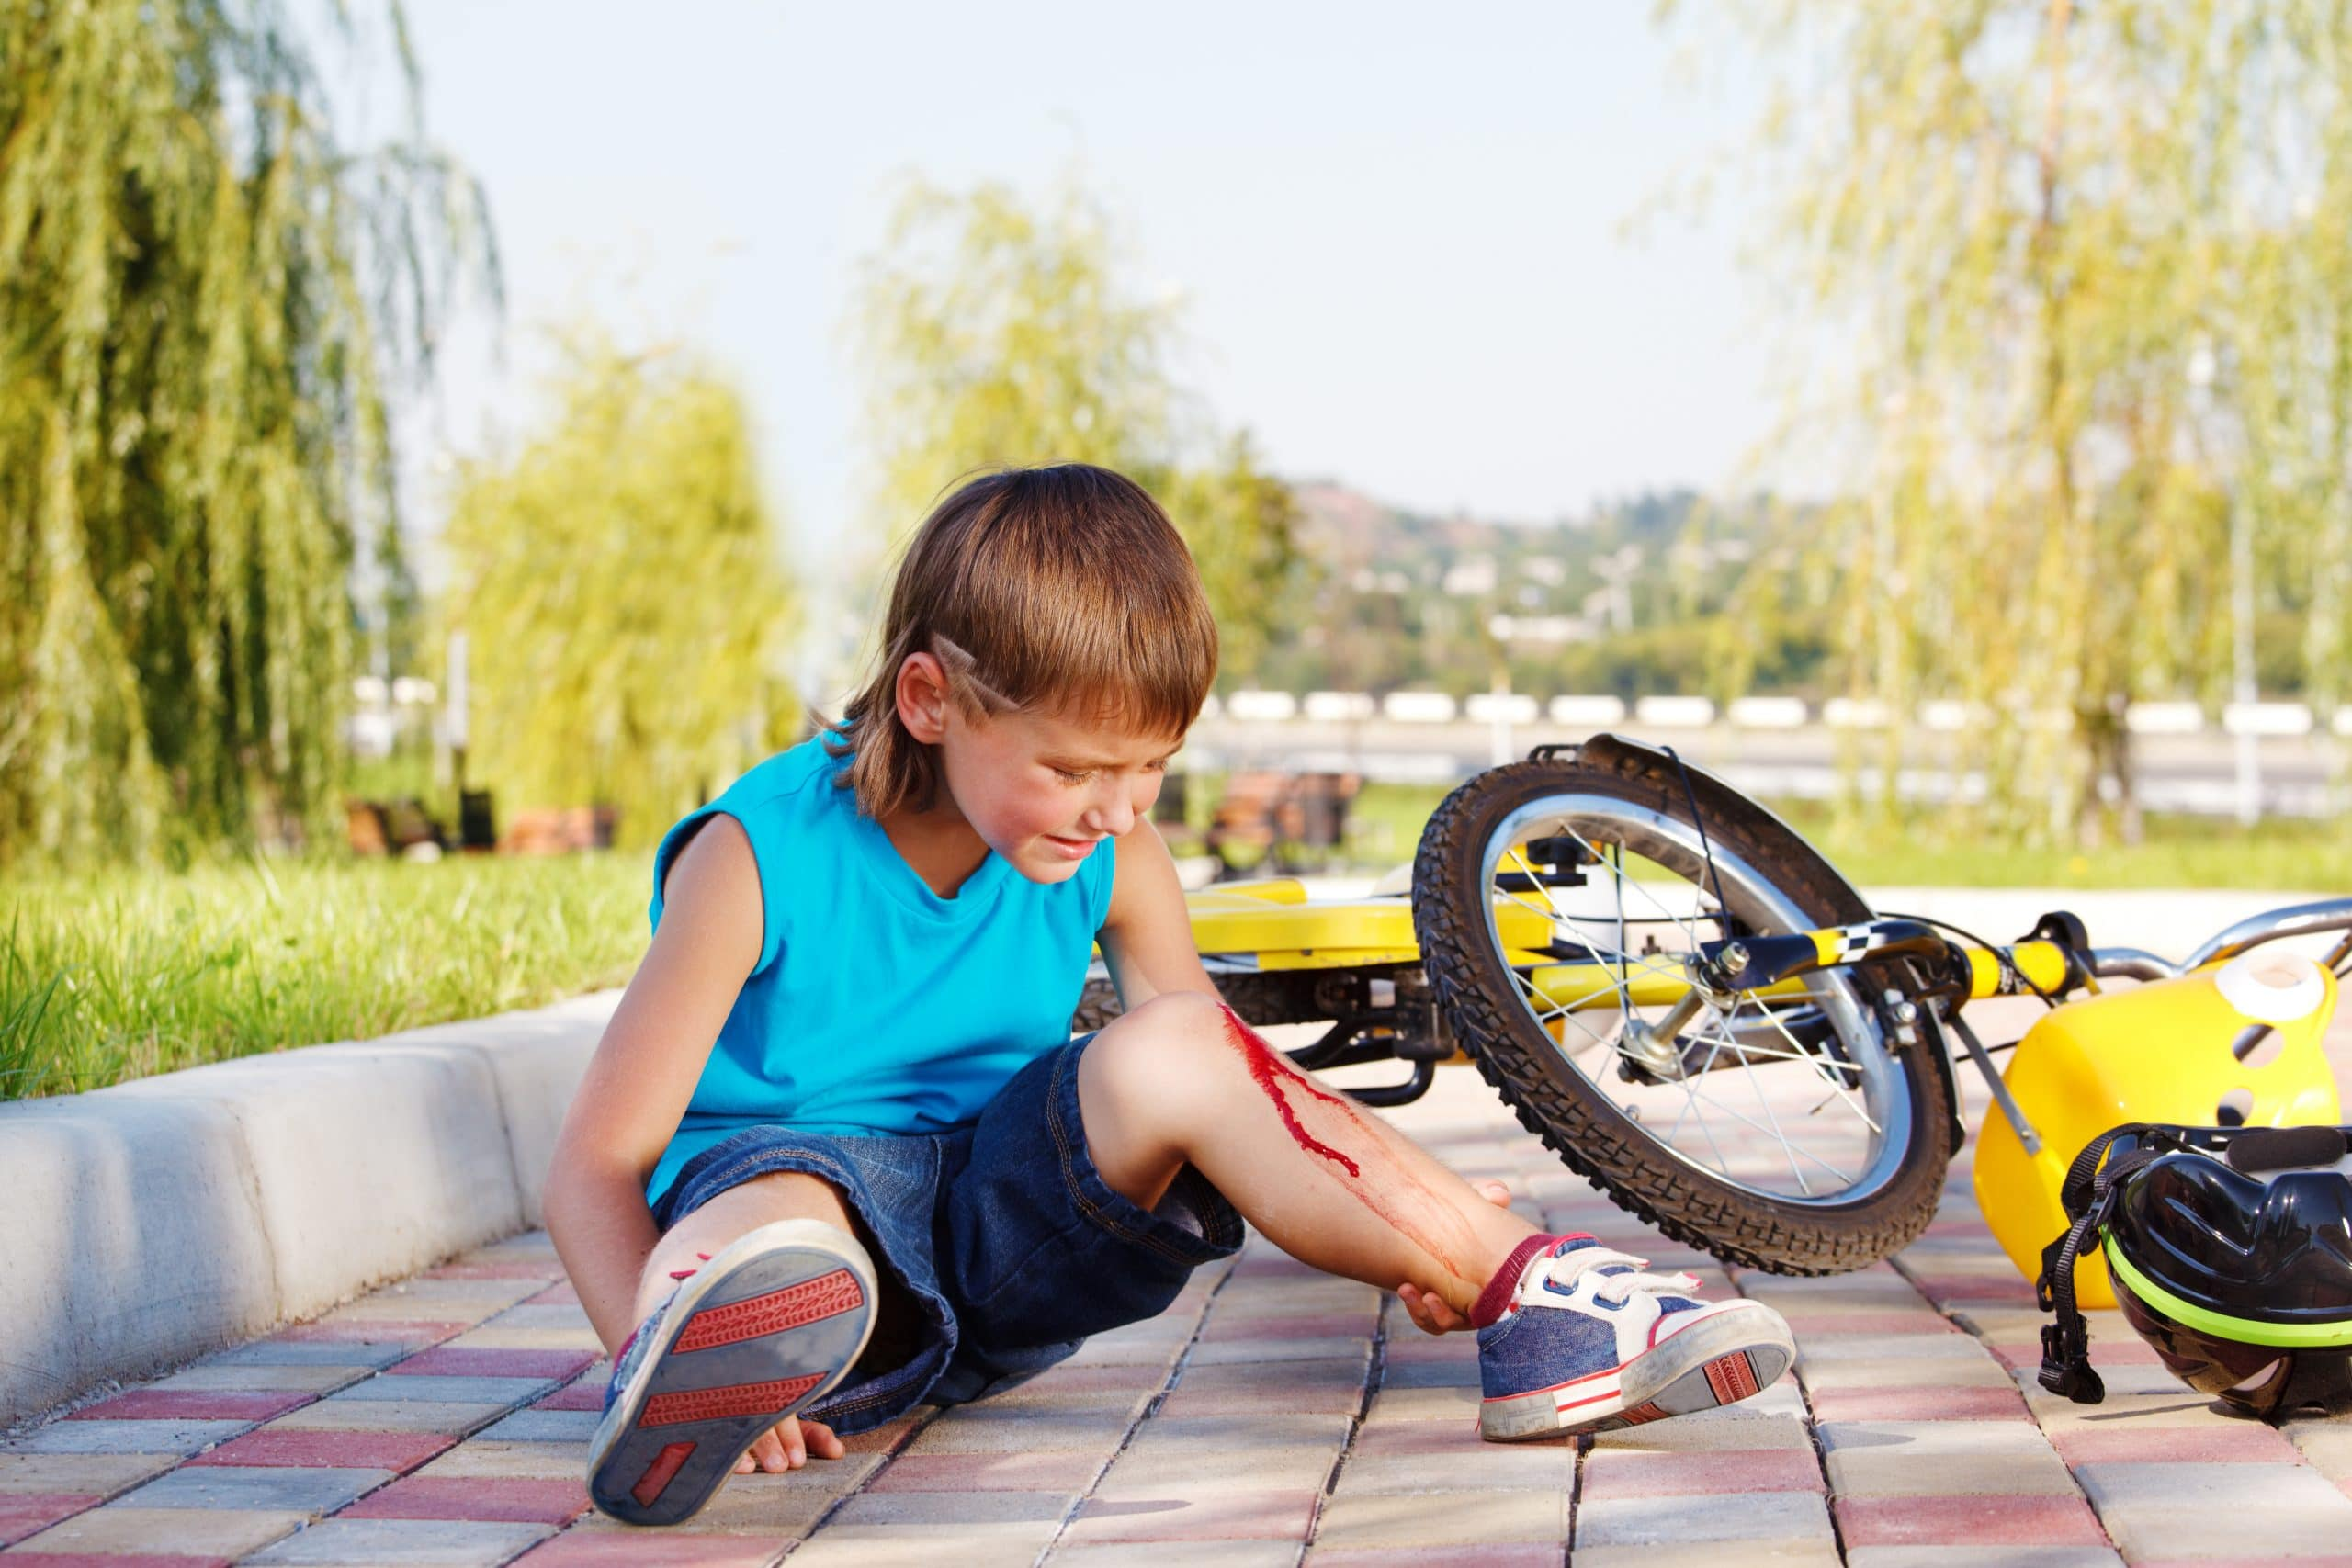 Boy crying after falling off bike